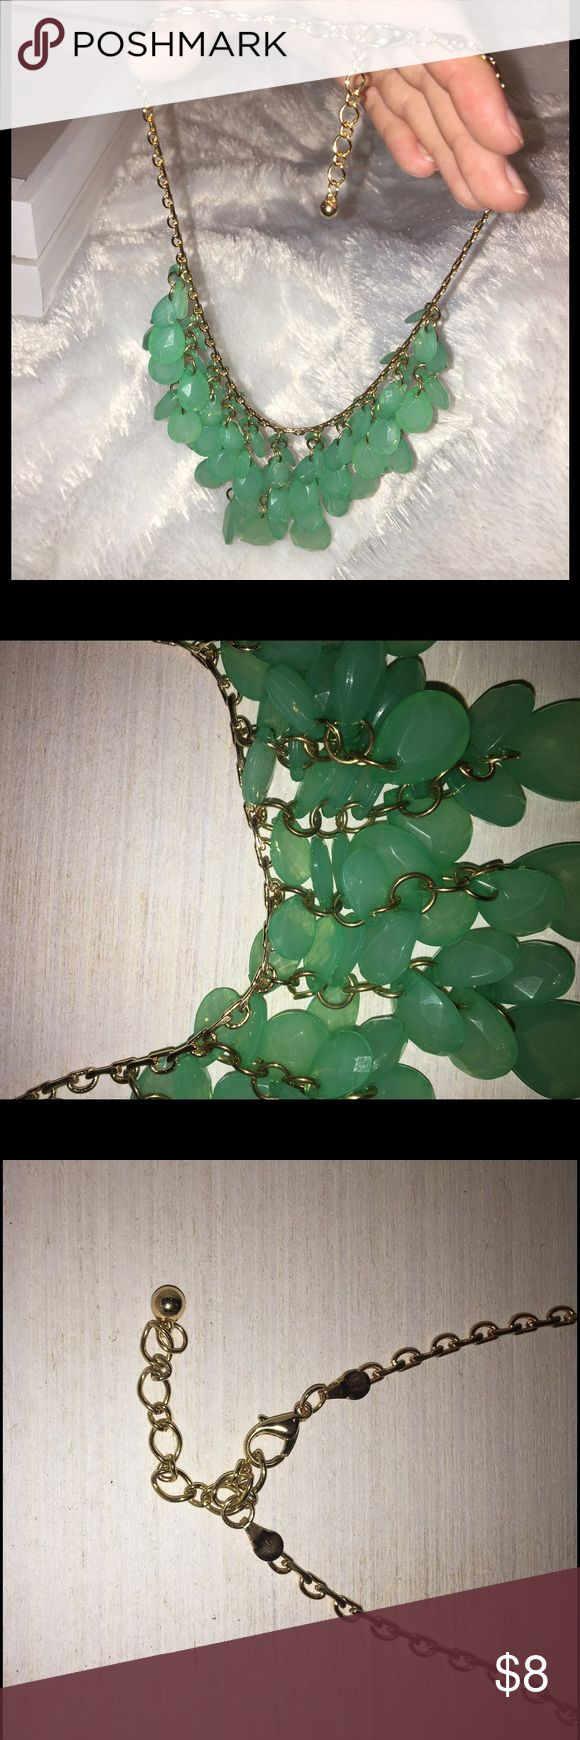 Mint Green Statement Necklace, Adjustable, NWOT Never worn! Bought it and decided I had too many necklaces already. Mint green jewels. Adjustable chain length. Perfect for spring and summer. :) Charlotte Russe Jewelry Necklaces